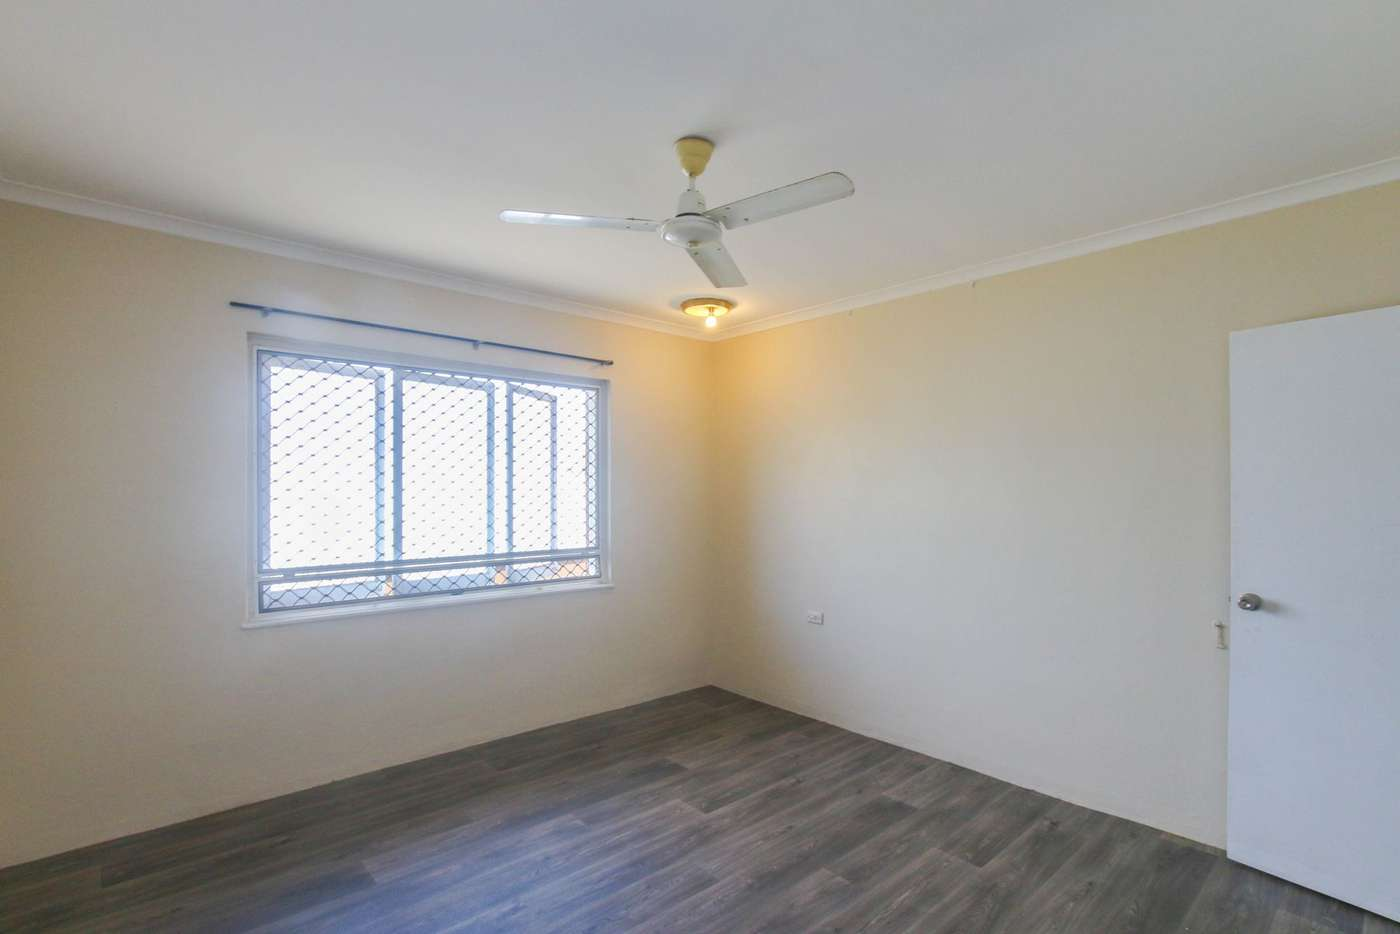 Seventh view of Homely apartment listing, 4/227 Aumuller Street, Westcourt QLD 4870